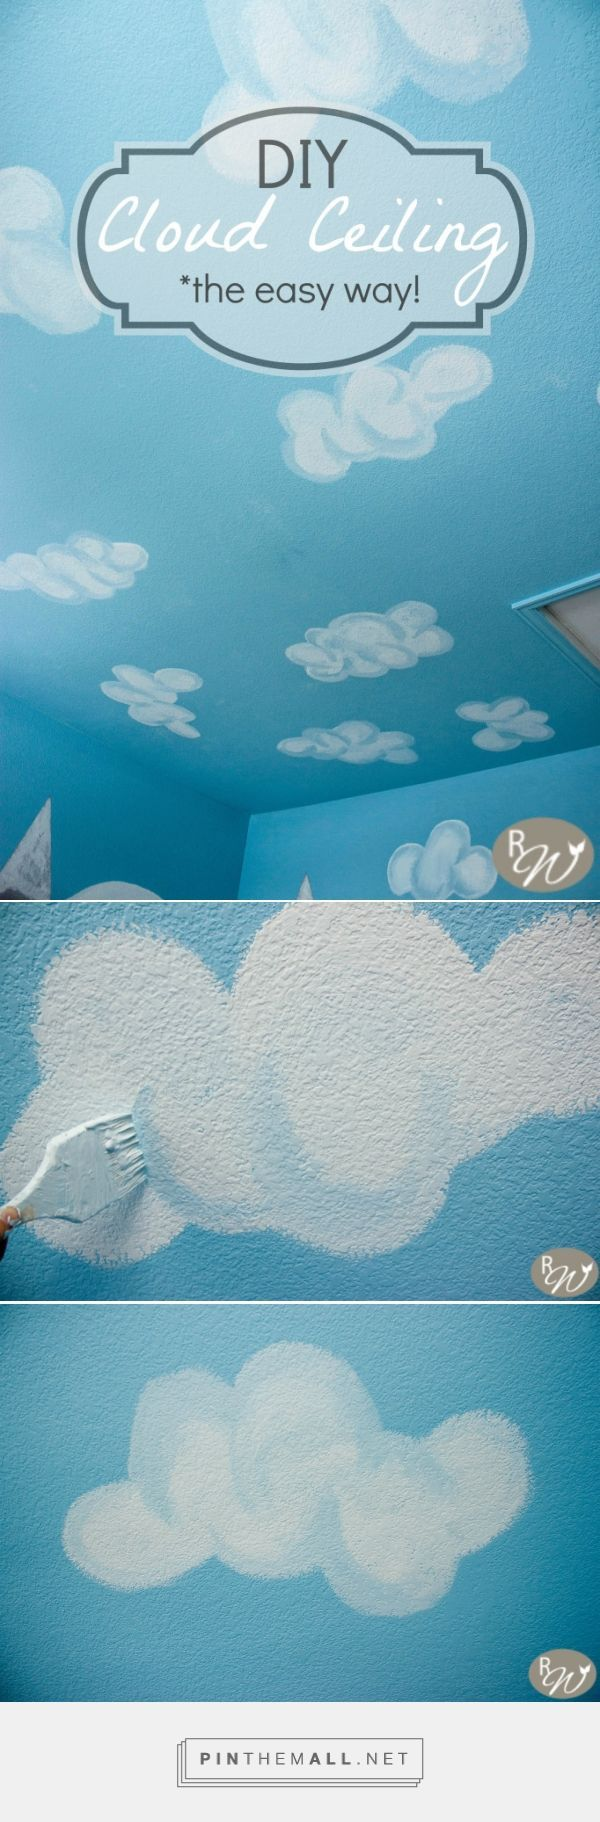 Diy cloud ceiling the easy way cloud ceiling http www for Diy clouds ceiling